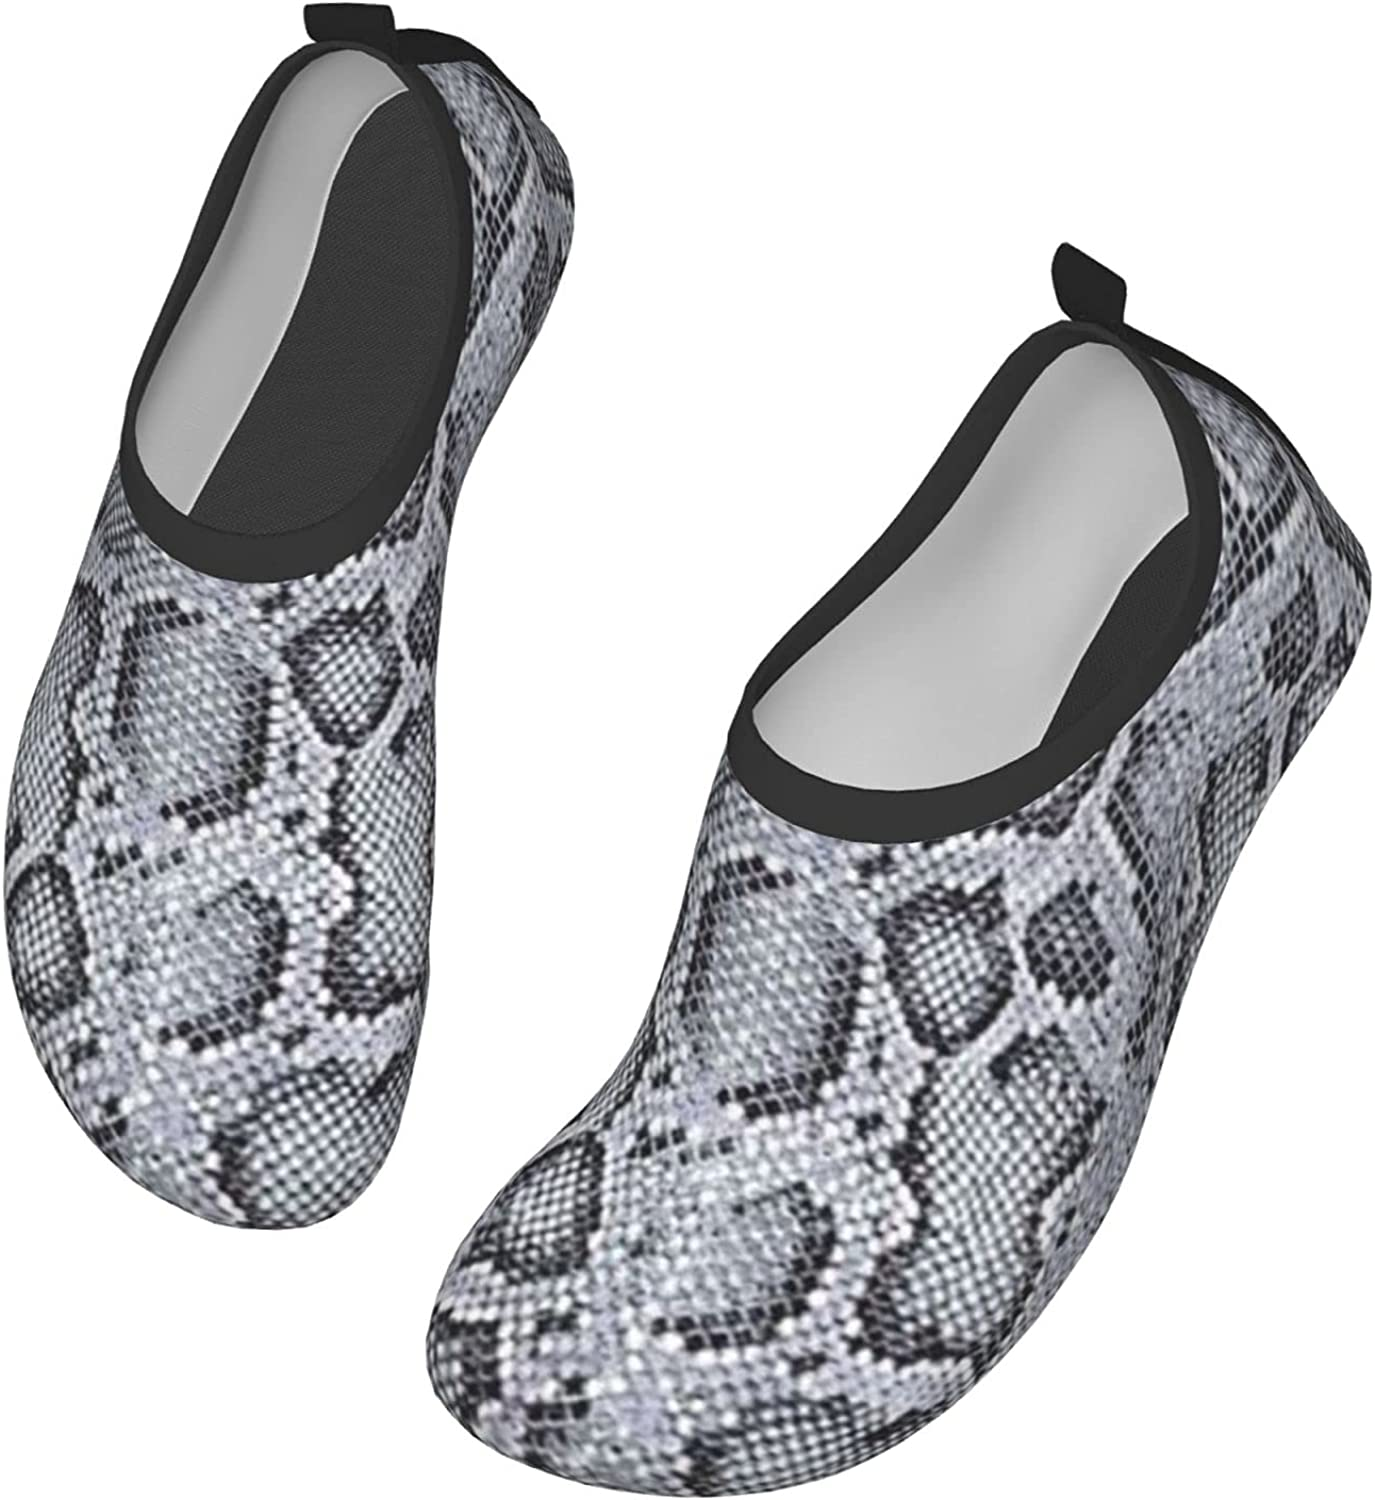 Coseevel Grey Snake Skin Pattern Water Shoes Quick-Dry Aqua Socks Barefoot Shoes for Water Sports Yoga Exercise Men Women Kids